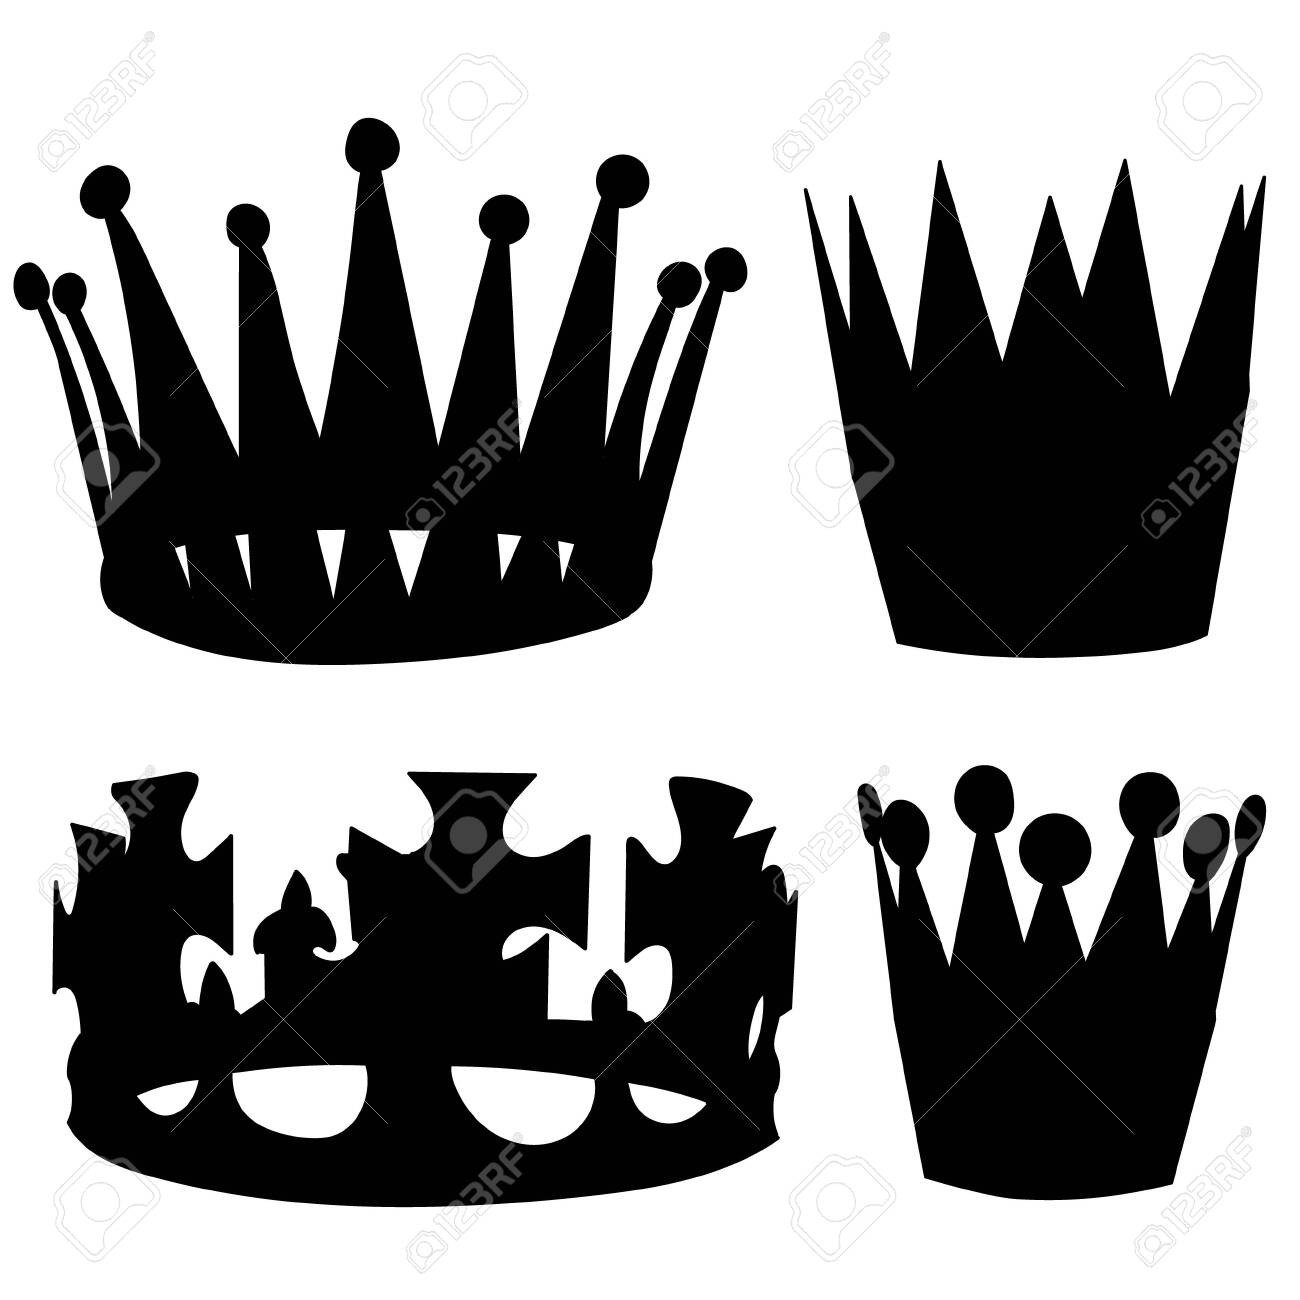 vector, on white background, set, crown silhouette collection - 149847629